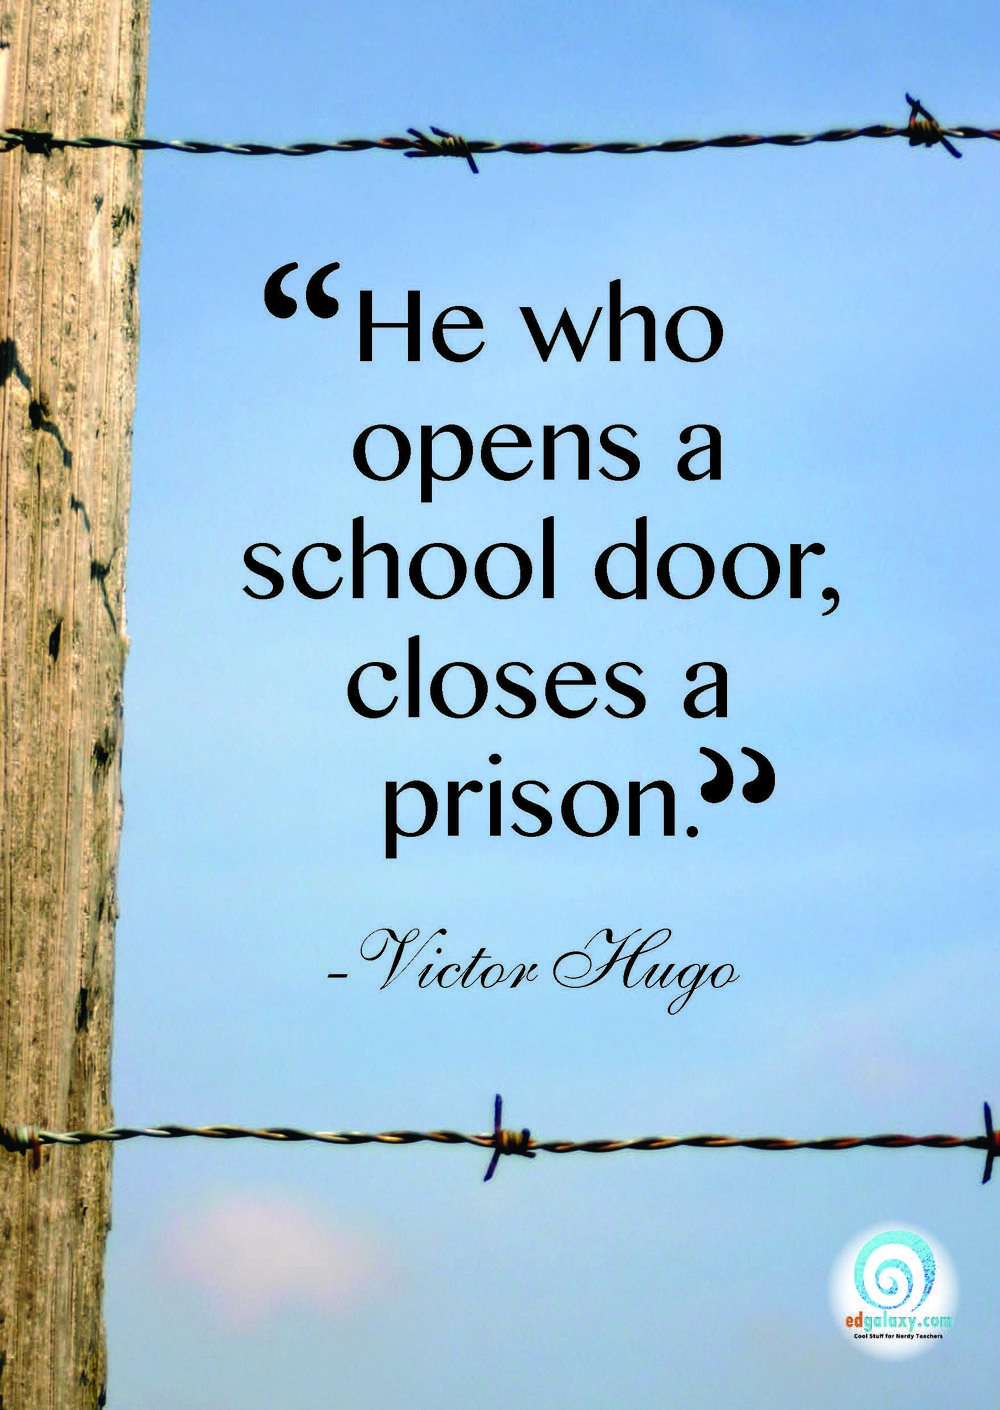 Life Quotes Posters He Who Opens A School Door Closes A Prison Victor Hugo Quote